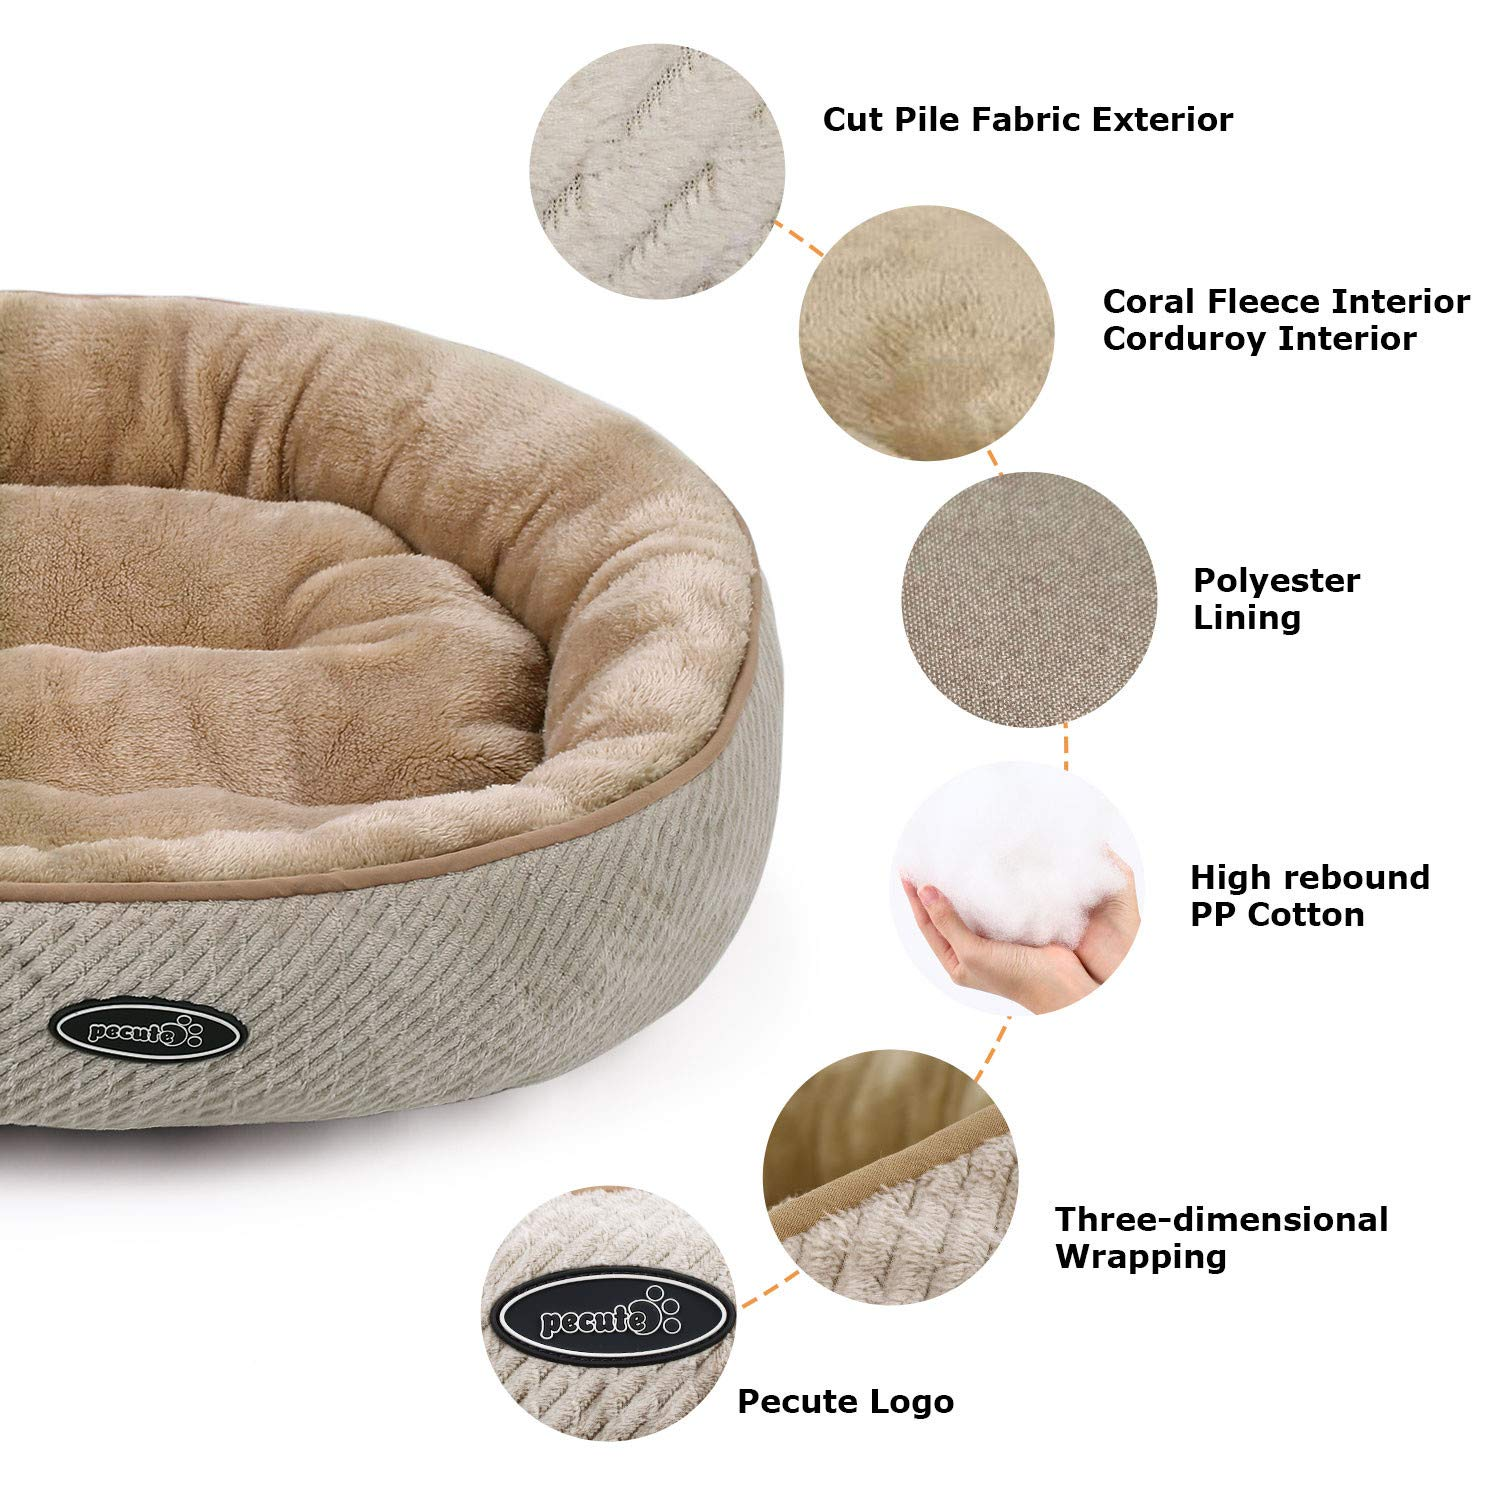 Pecute Cat Bed for Cats and Puppies Oval (50cm)- Machine Washable Plush Padded Soft Comfy (Beige)